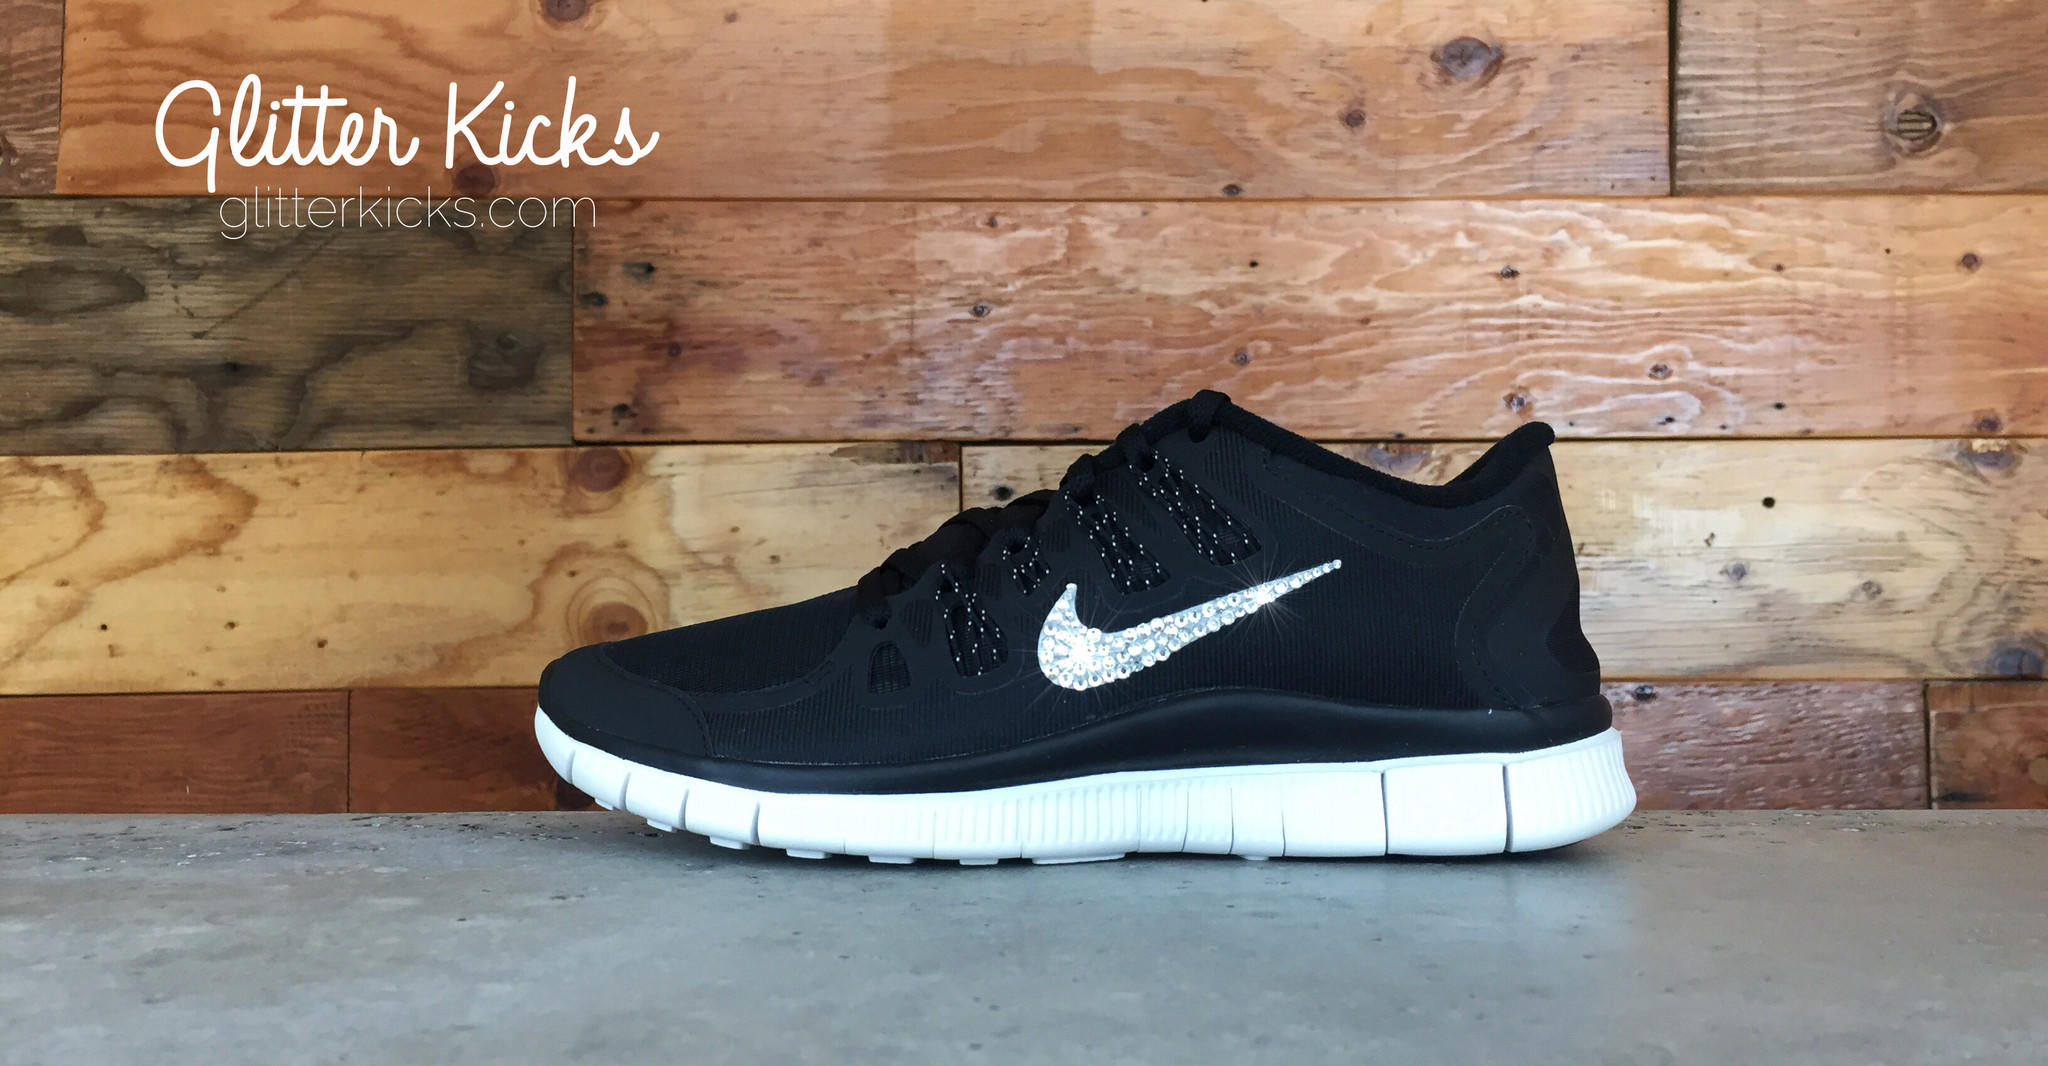 Women s Nike Free 5.0+ Running Shoes By from Glitter Kicks 0d2cdfbd1a